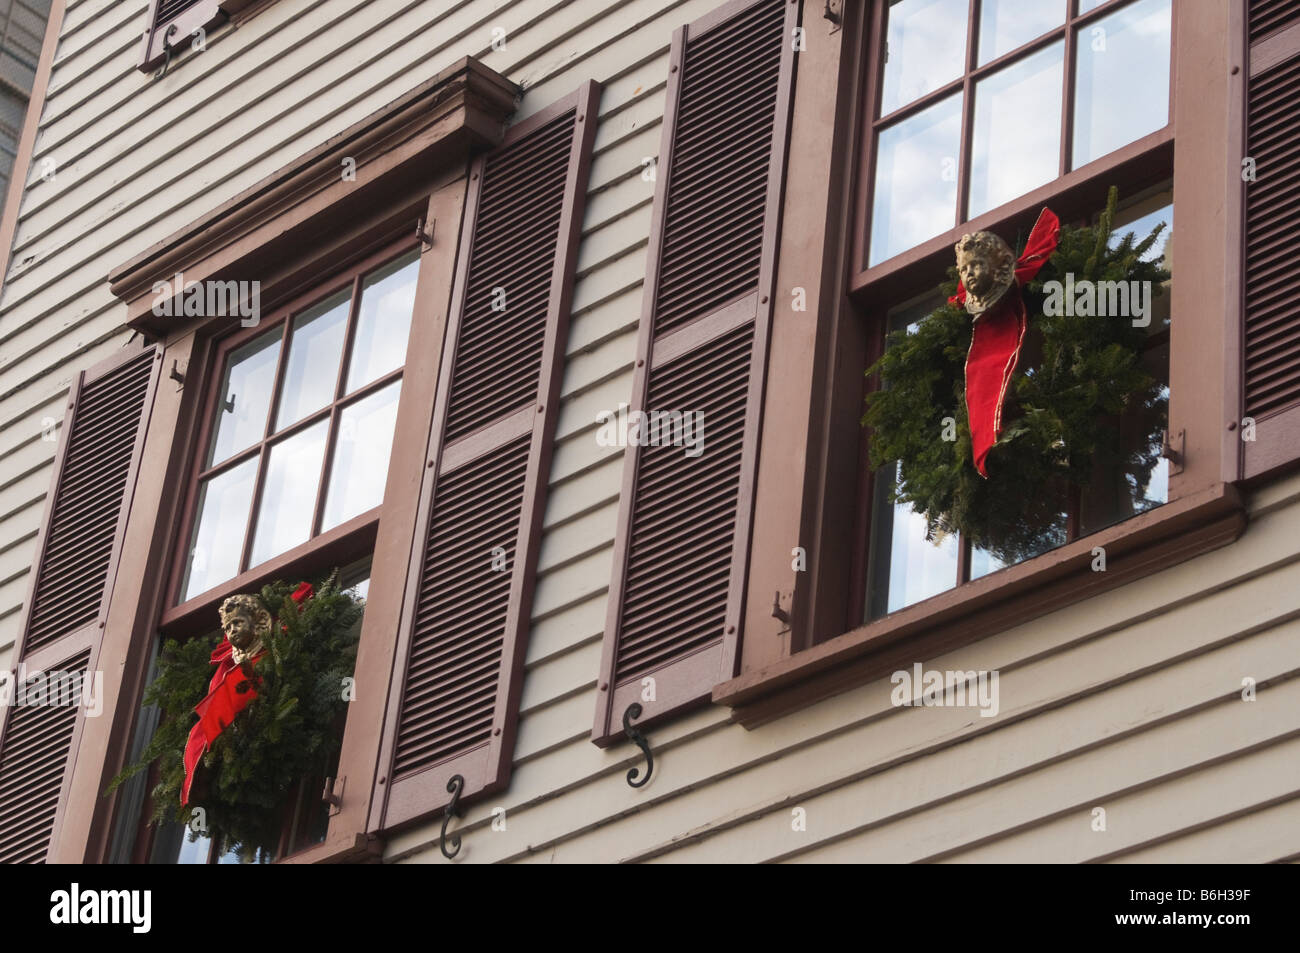 New York NY 12 December 2008 Shuttered windows with Christmas wreaths adorn  facade of 17 Grove Street ©Stacy - Stock Image